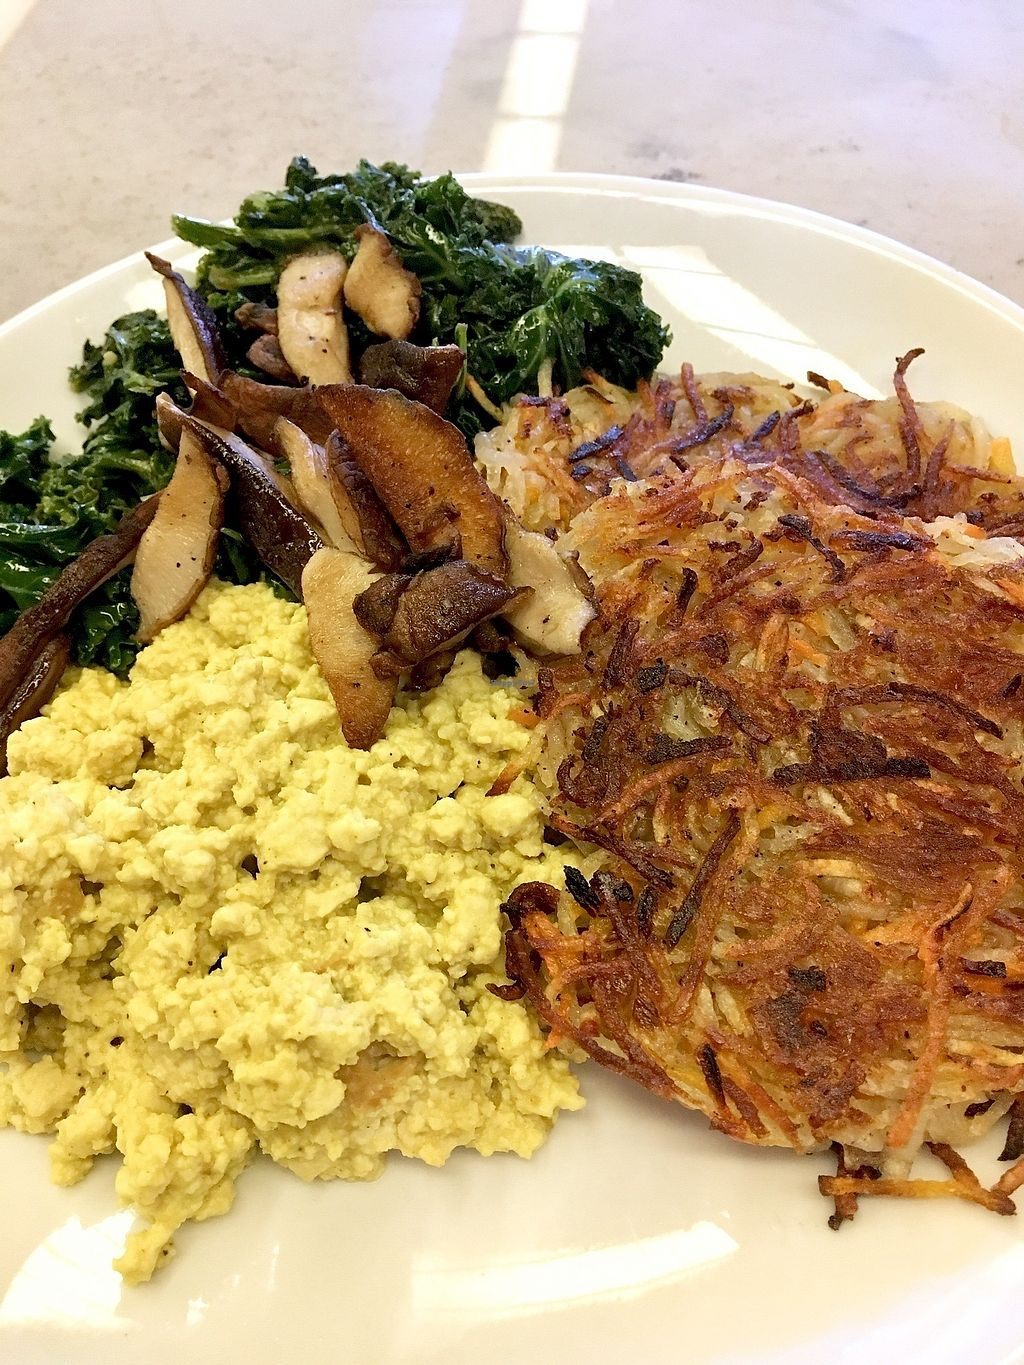 """Photo of B52 Cafe  by <a href=""""/members/profile/ecoRDN"""">ecoRDN</a> <br/>Tofu Scramble, B52 Pittsburgh - Photo By: ecoRDN - ecoRDN.com <br/> February 23, 2018  - <a href='/contact/abuse/image/69126/362893'>Report</a>"""